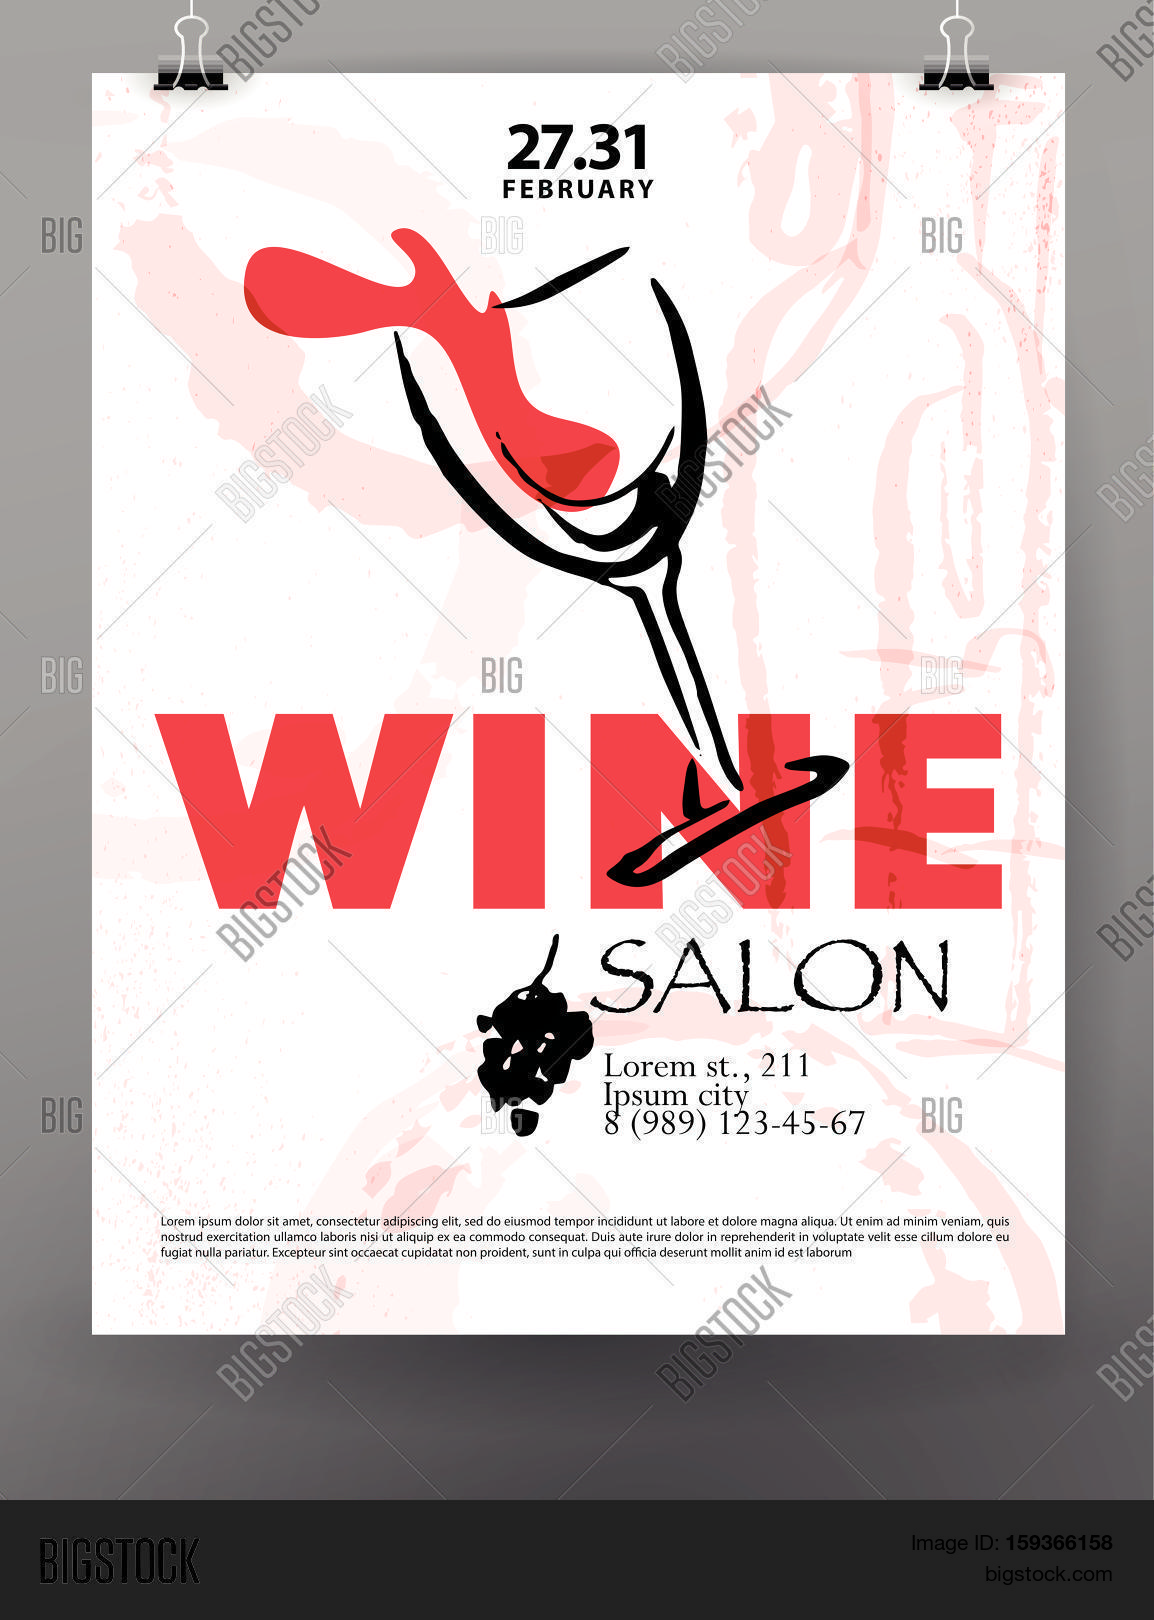 Vector Artistic Hand Drawn Wine Festival Poster Design Ink Drawing Illustration Watercolor Painting